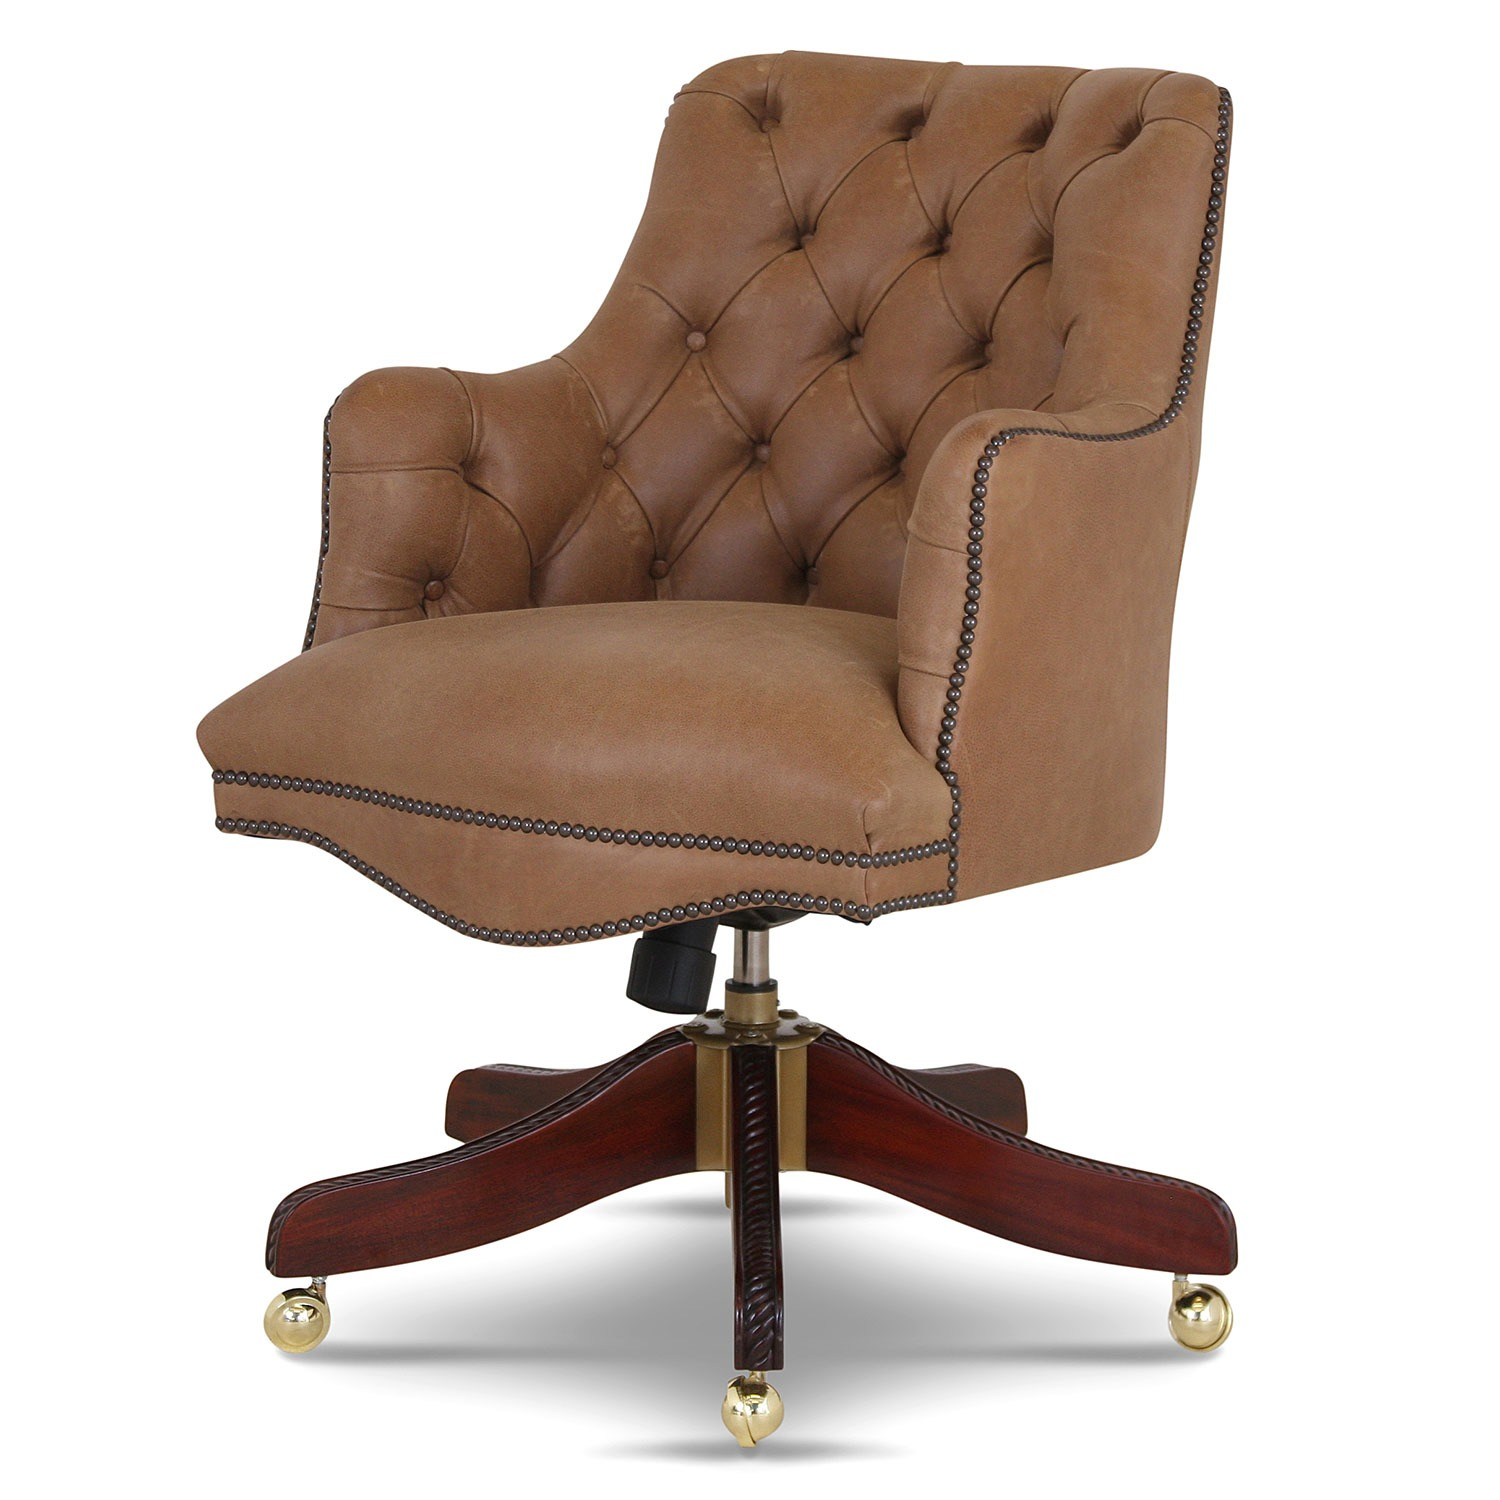 Buttoned Bosuns swivel chair in Stone leather